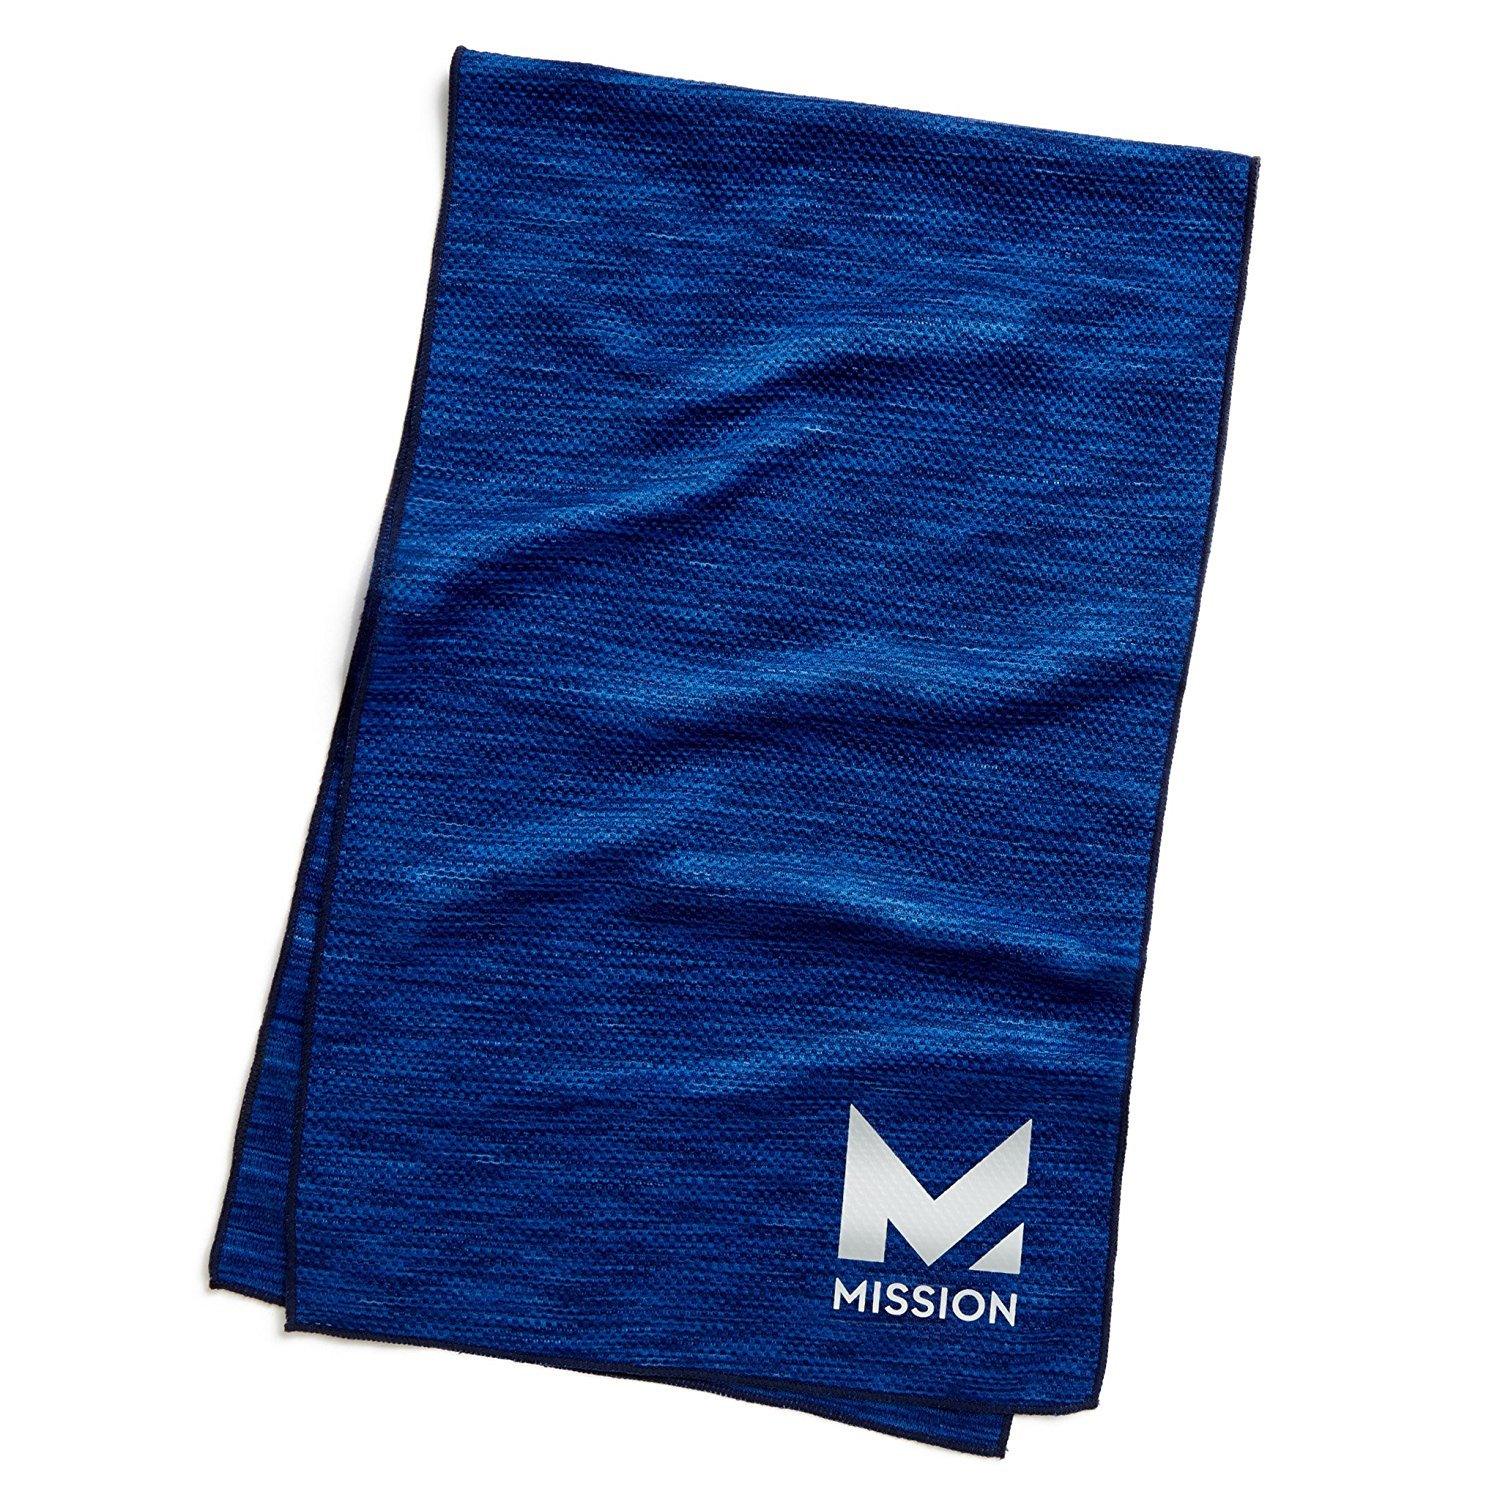 MISSION Premium Cooling Towel by Mission